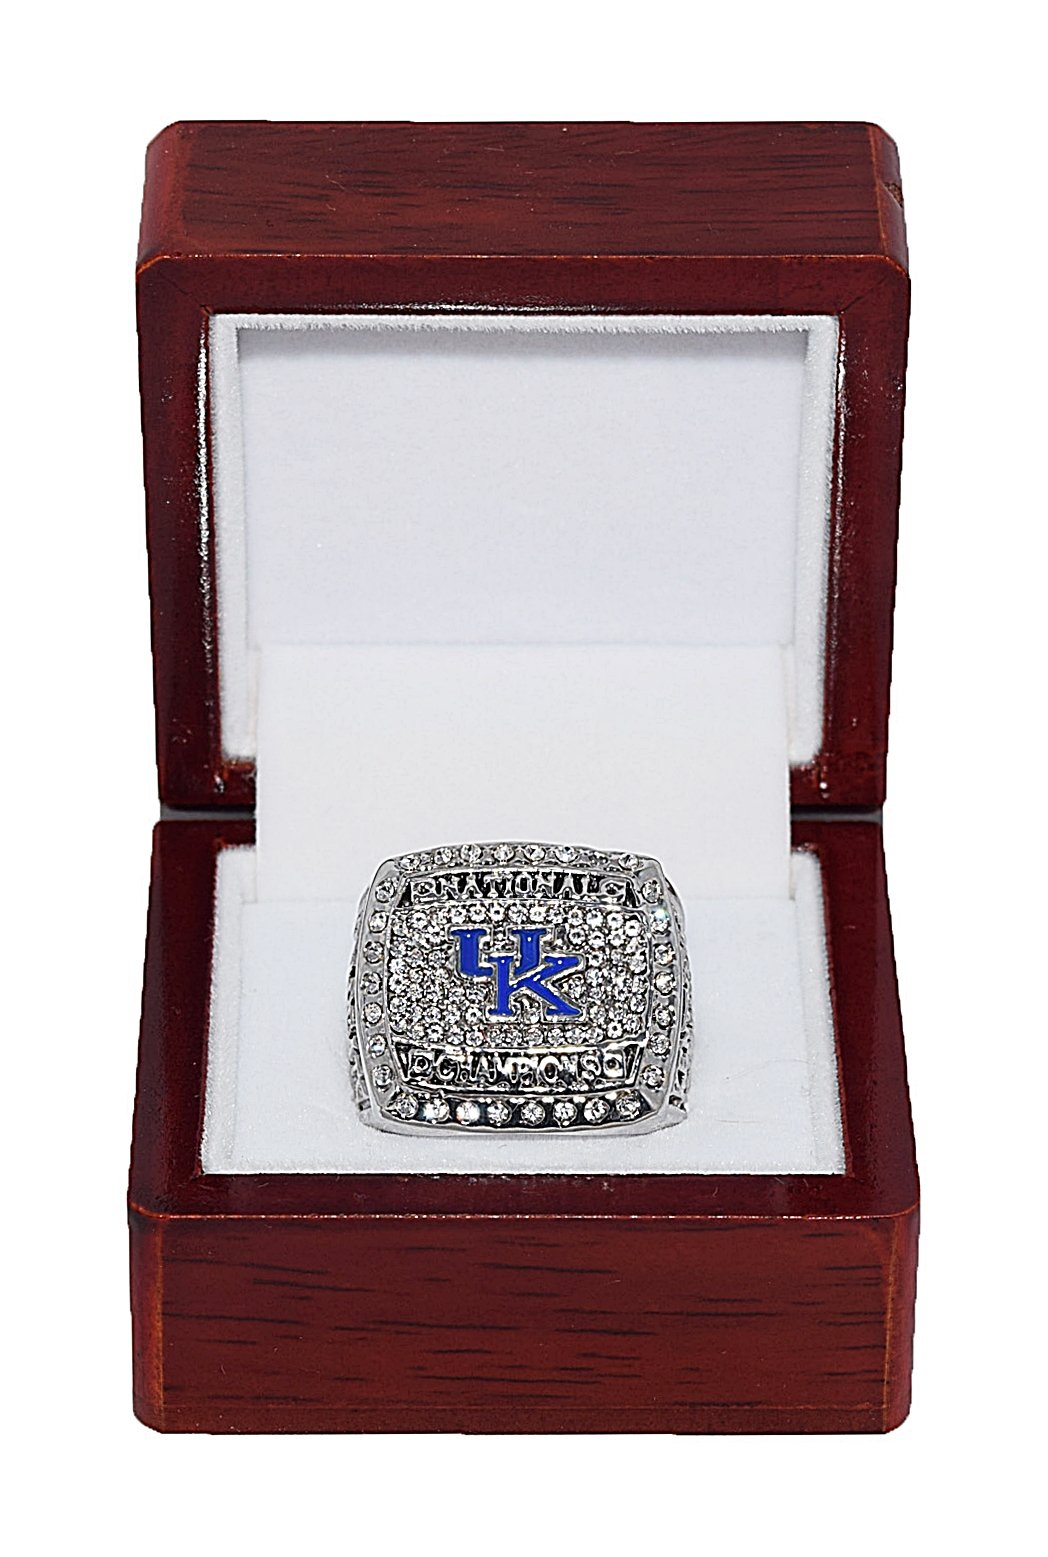 University of Kentucky Wildcats 2012 March Madness NCAA NATIONAL CHAMPIONS Rare & Collectible High Quality Replica NCAA Basketball Silver Championship Ring with Cherrywood Display Box